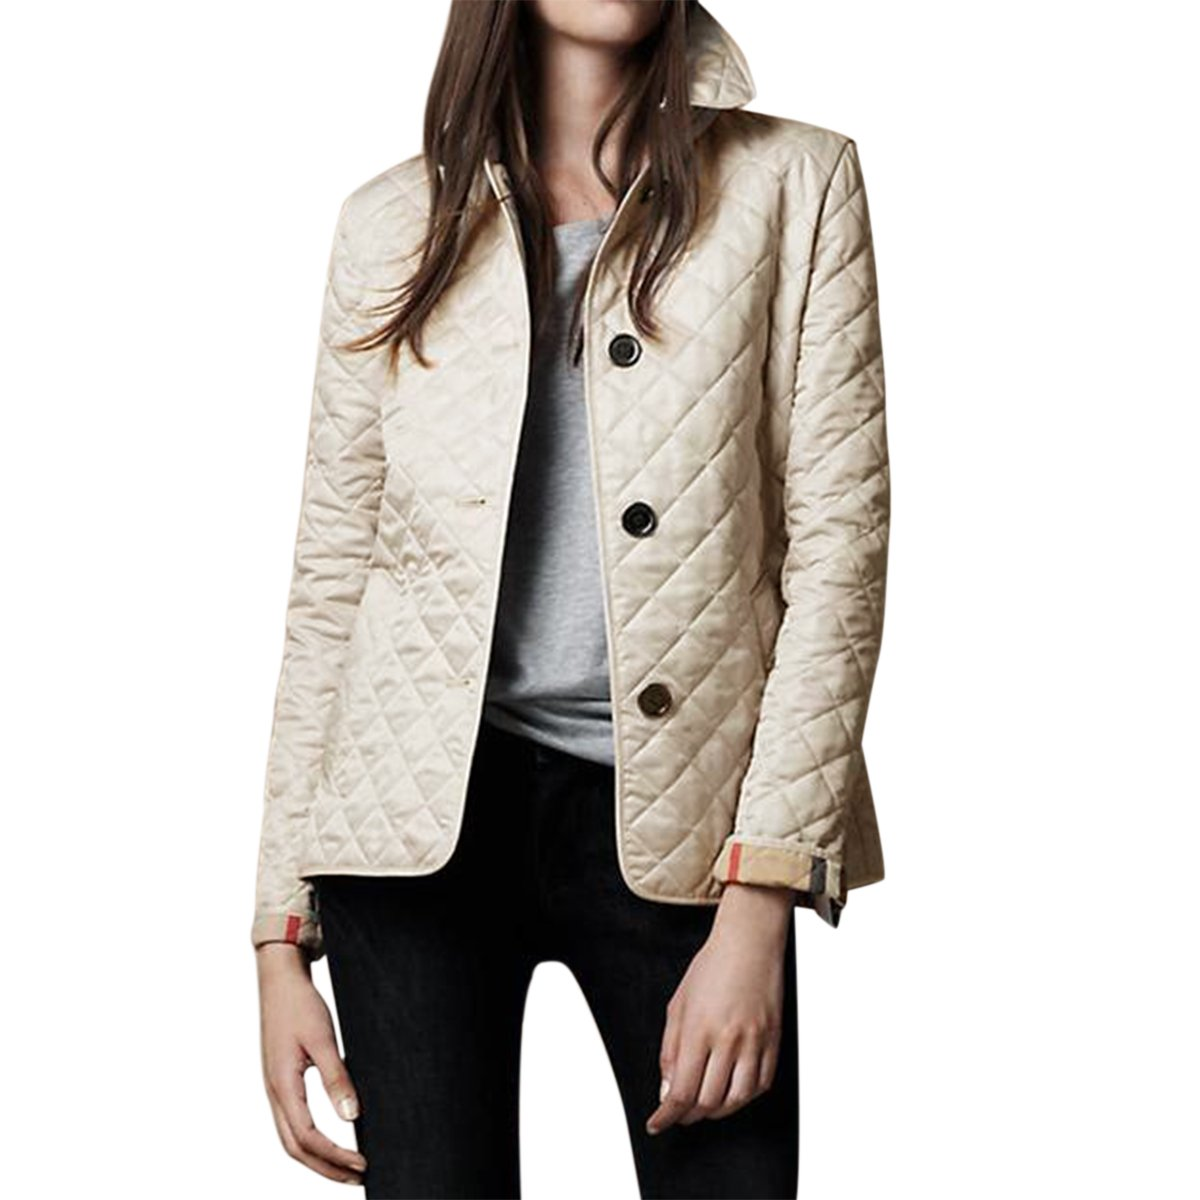 E.JAN1ST Women's Diamond Quilted Jacket Stand Collar Button End with Pocket Coat, Cream, TagsizeXXXL=USsize8